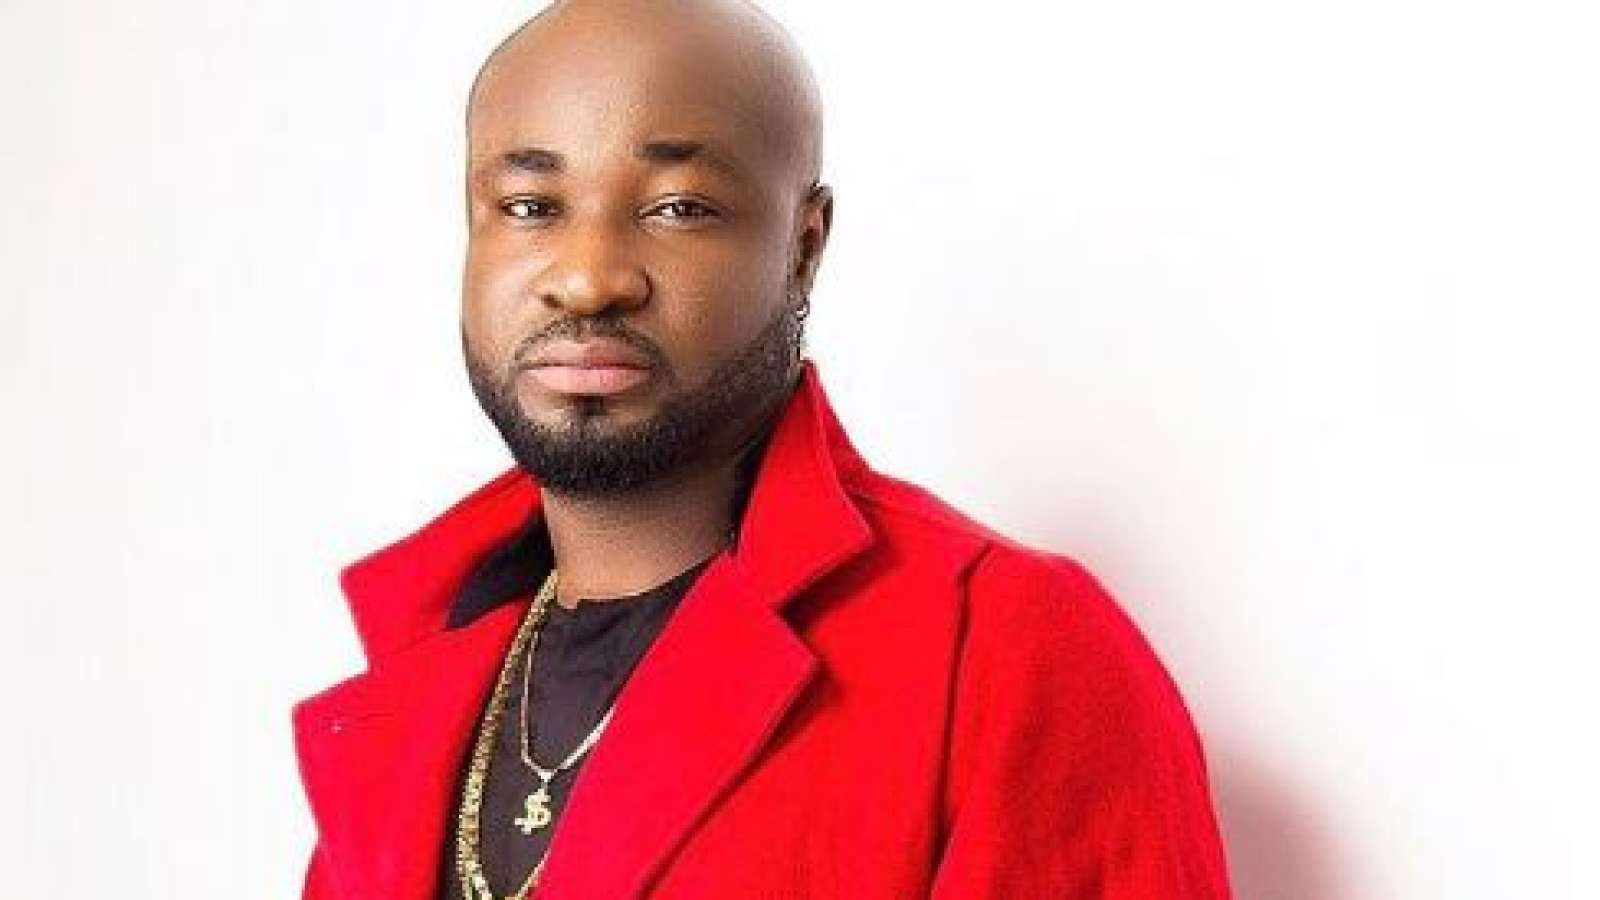 Singer Harrysong And Manager Arrested For Fraud And Forgery.